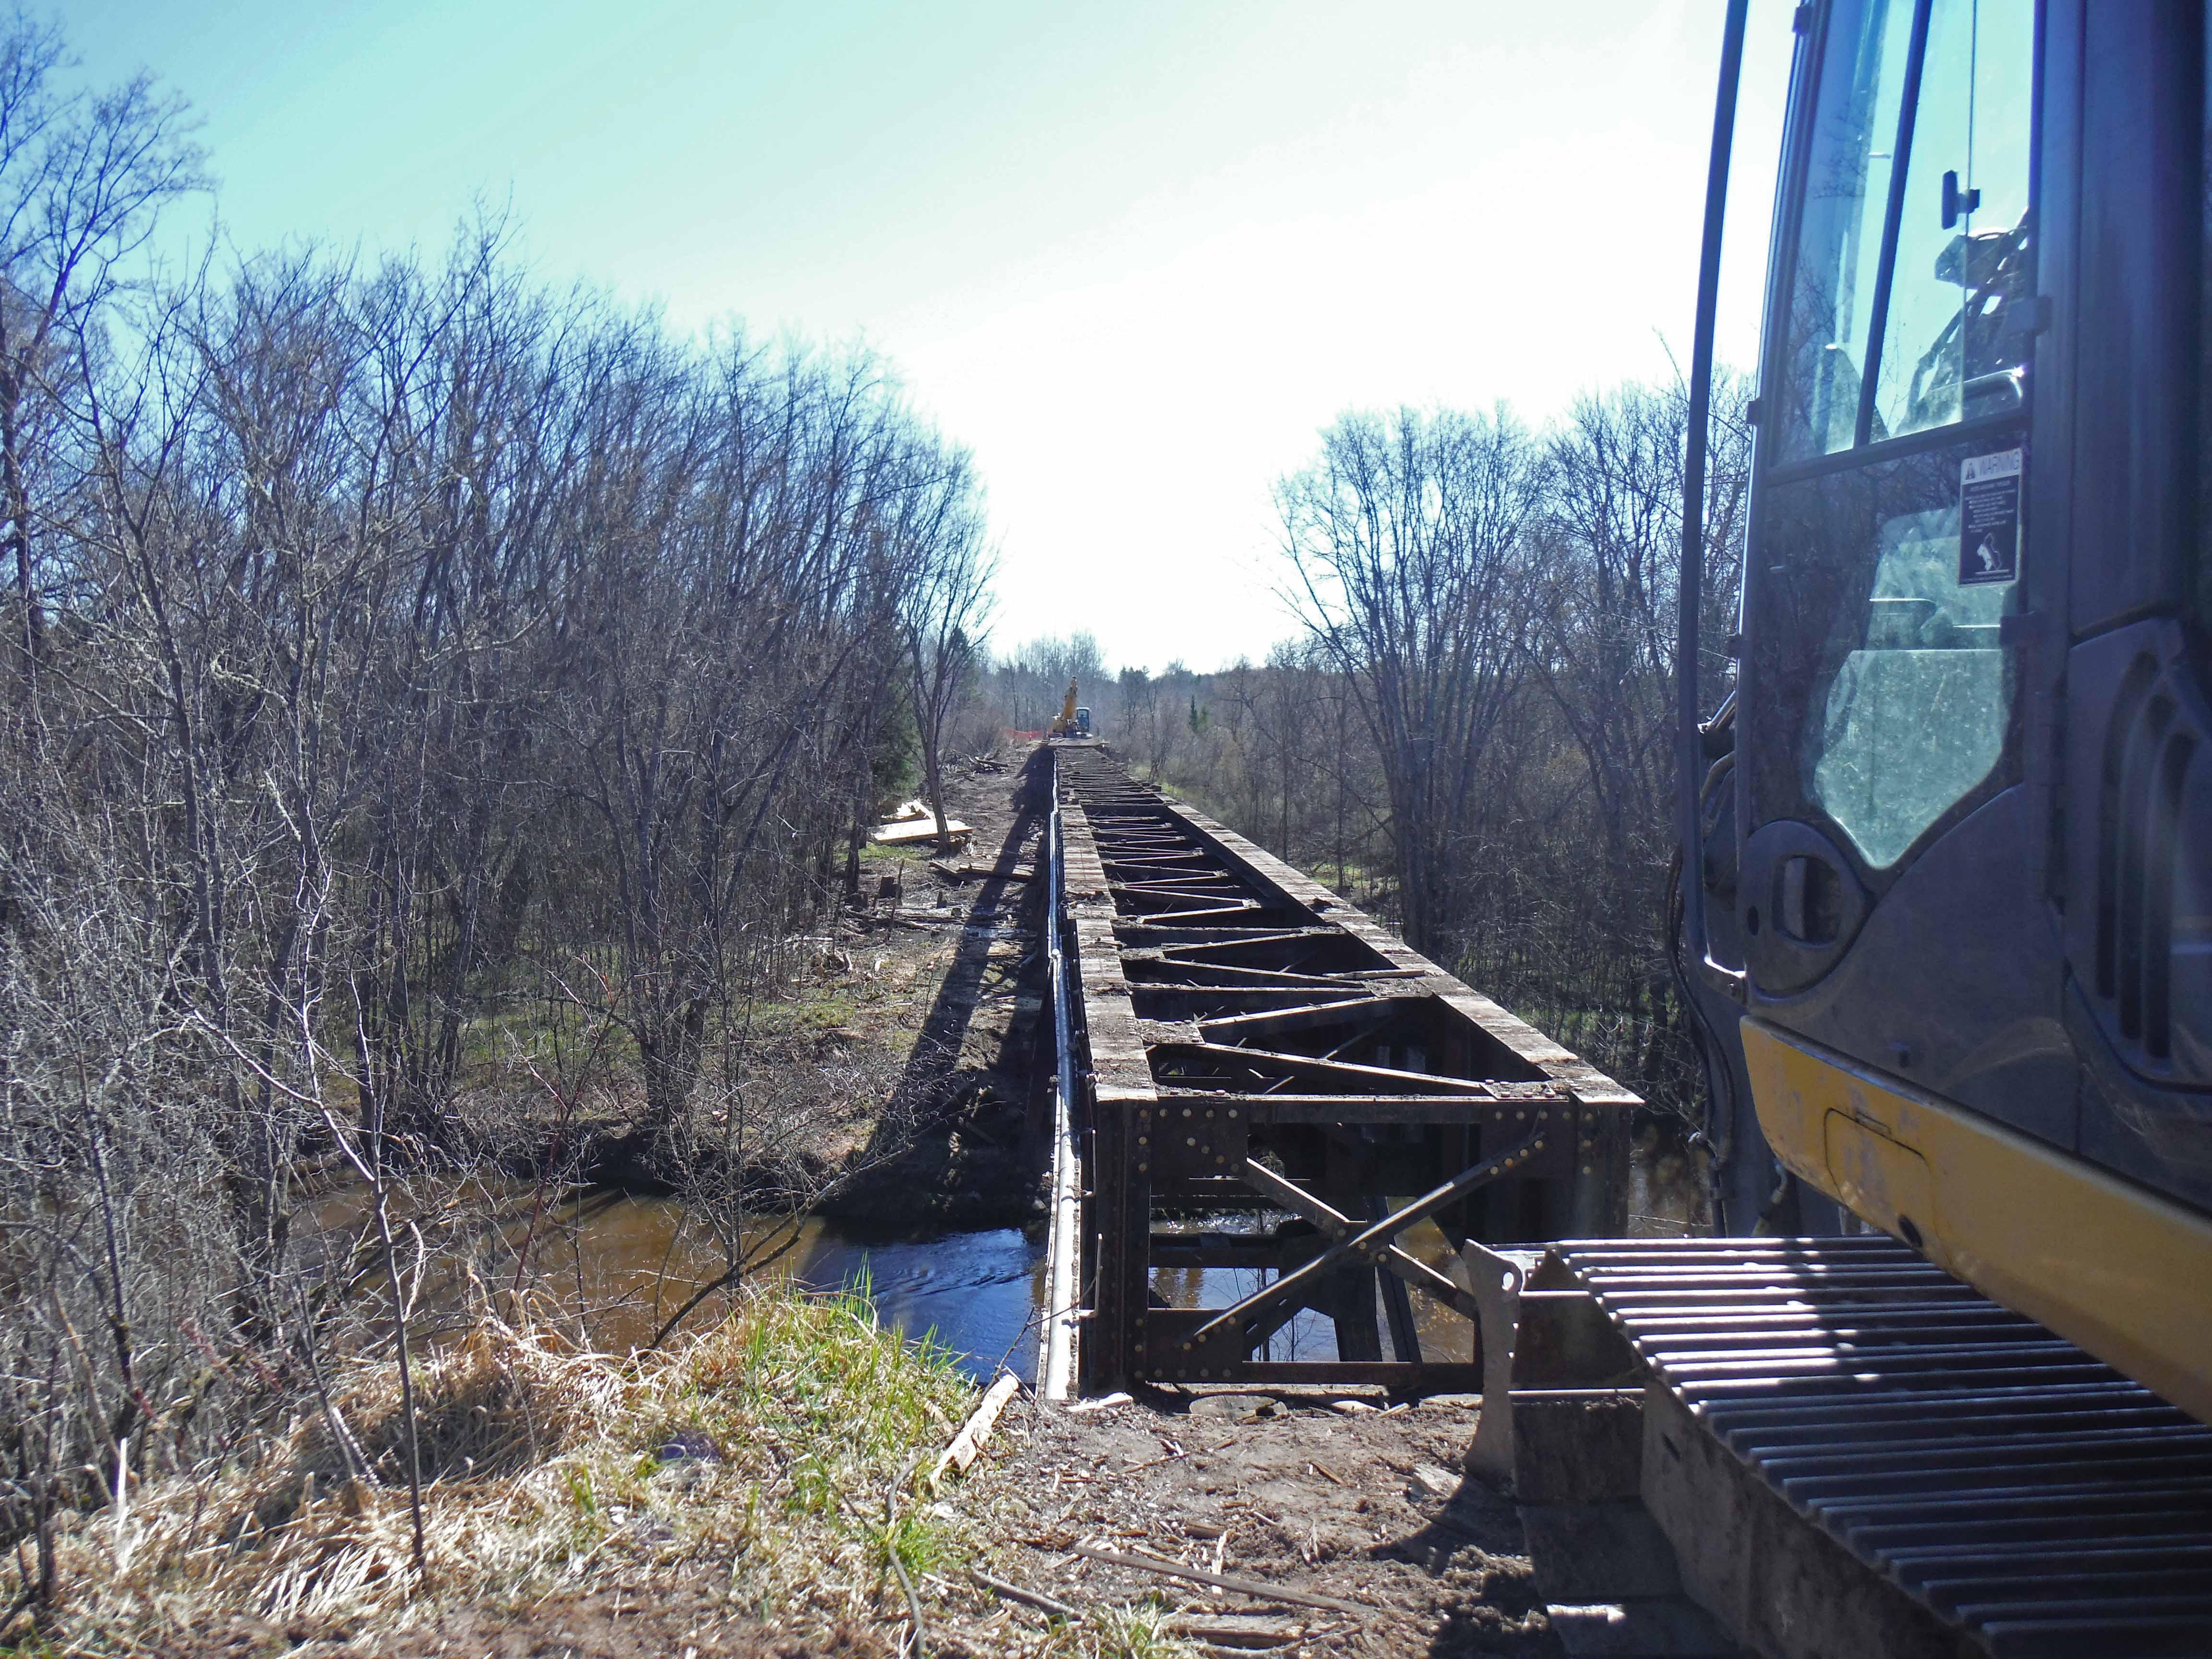 The decking and abutments of a trail bridge over the South Branch of the Ontonagon River are being removed.Credit: Michigan Department of Natural Resources.